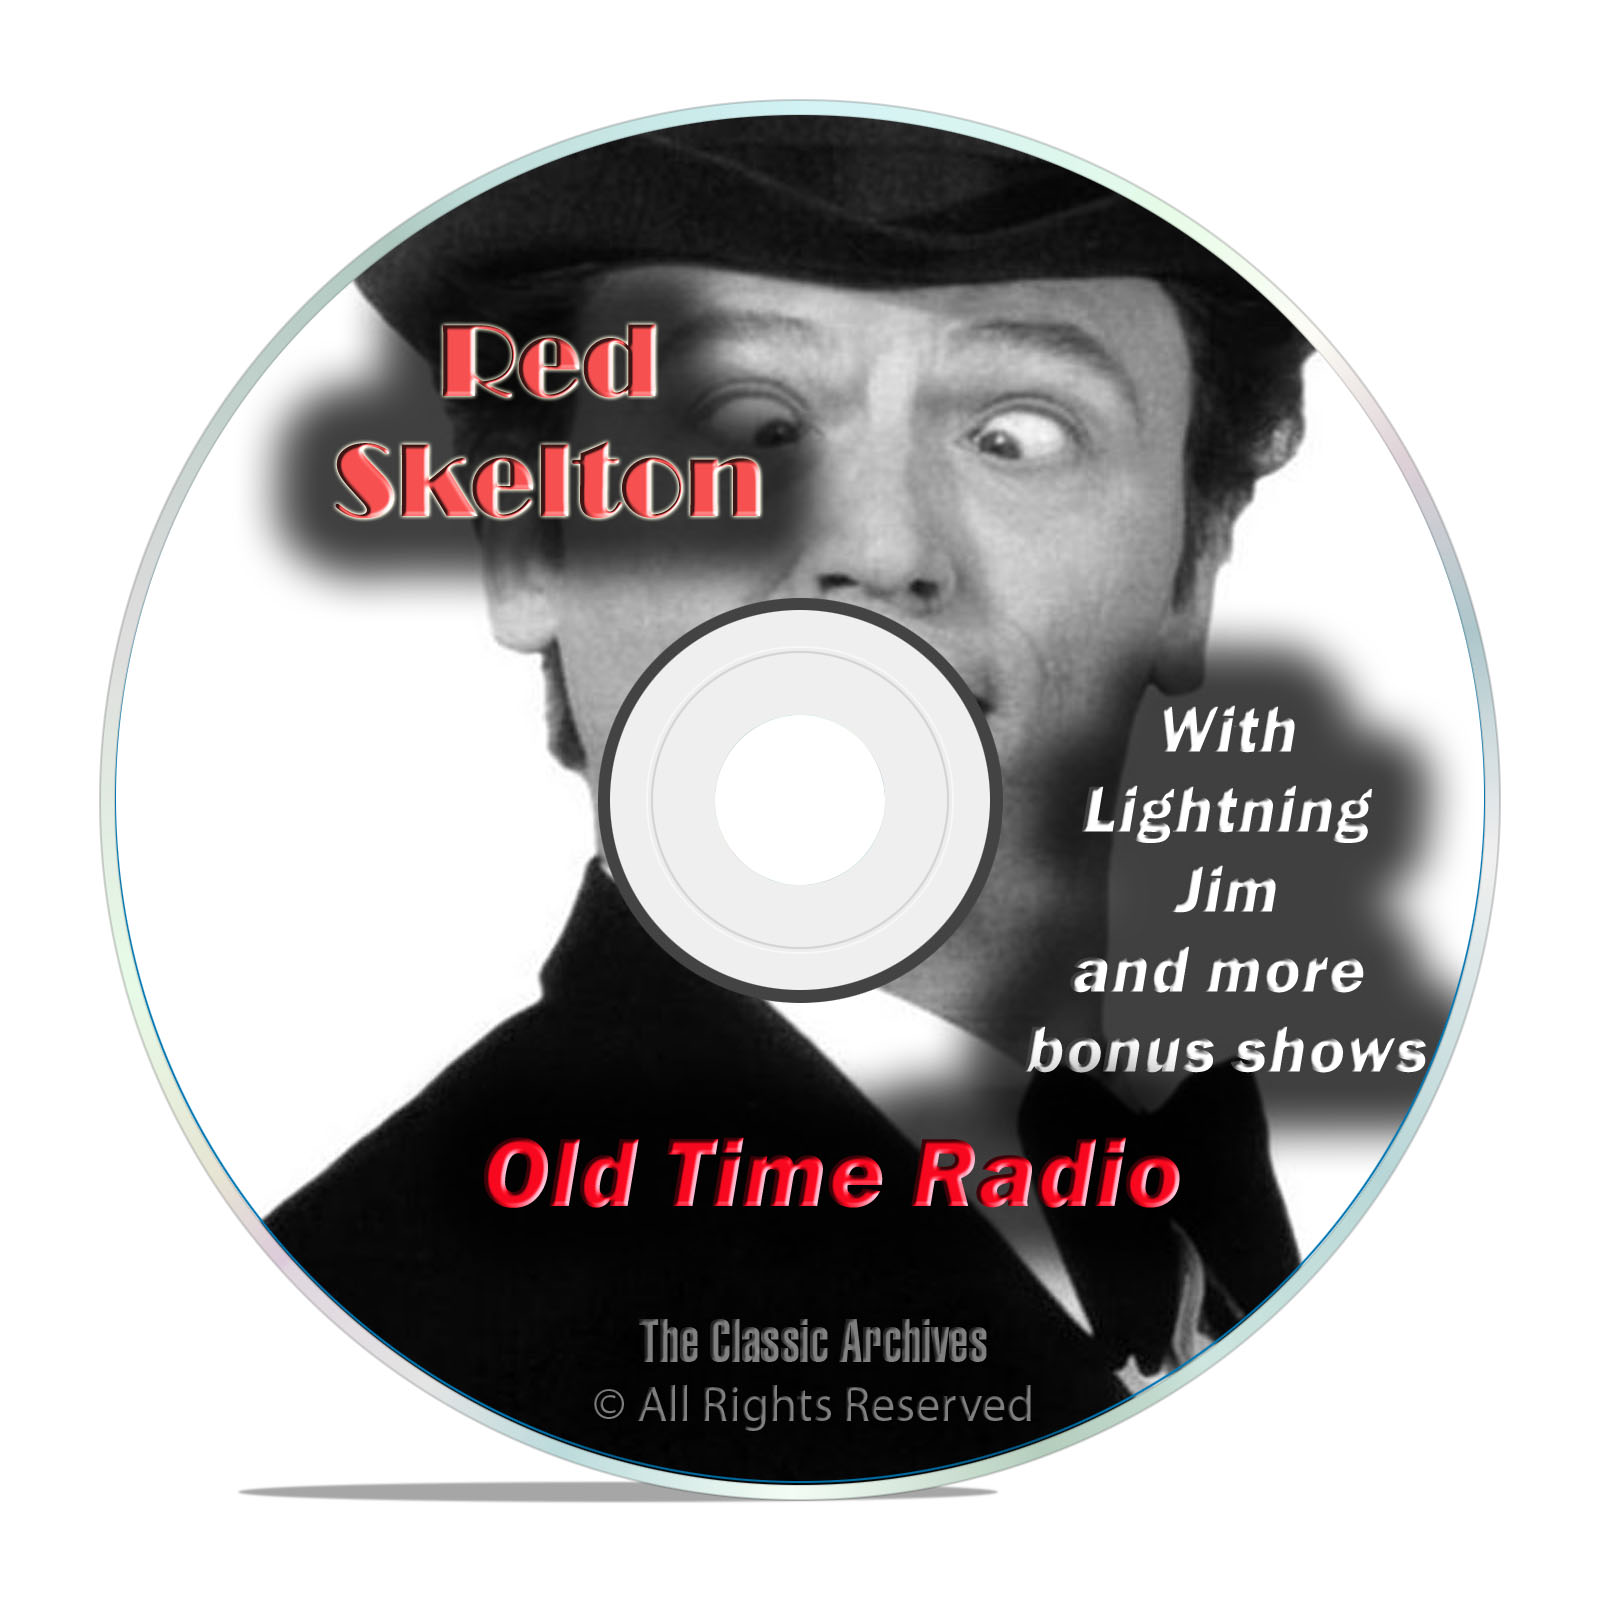 Red Skelton, 854 CLASSIC EPISODES, Comedy Old Time Radio, OTR, DVD